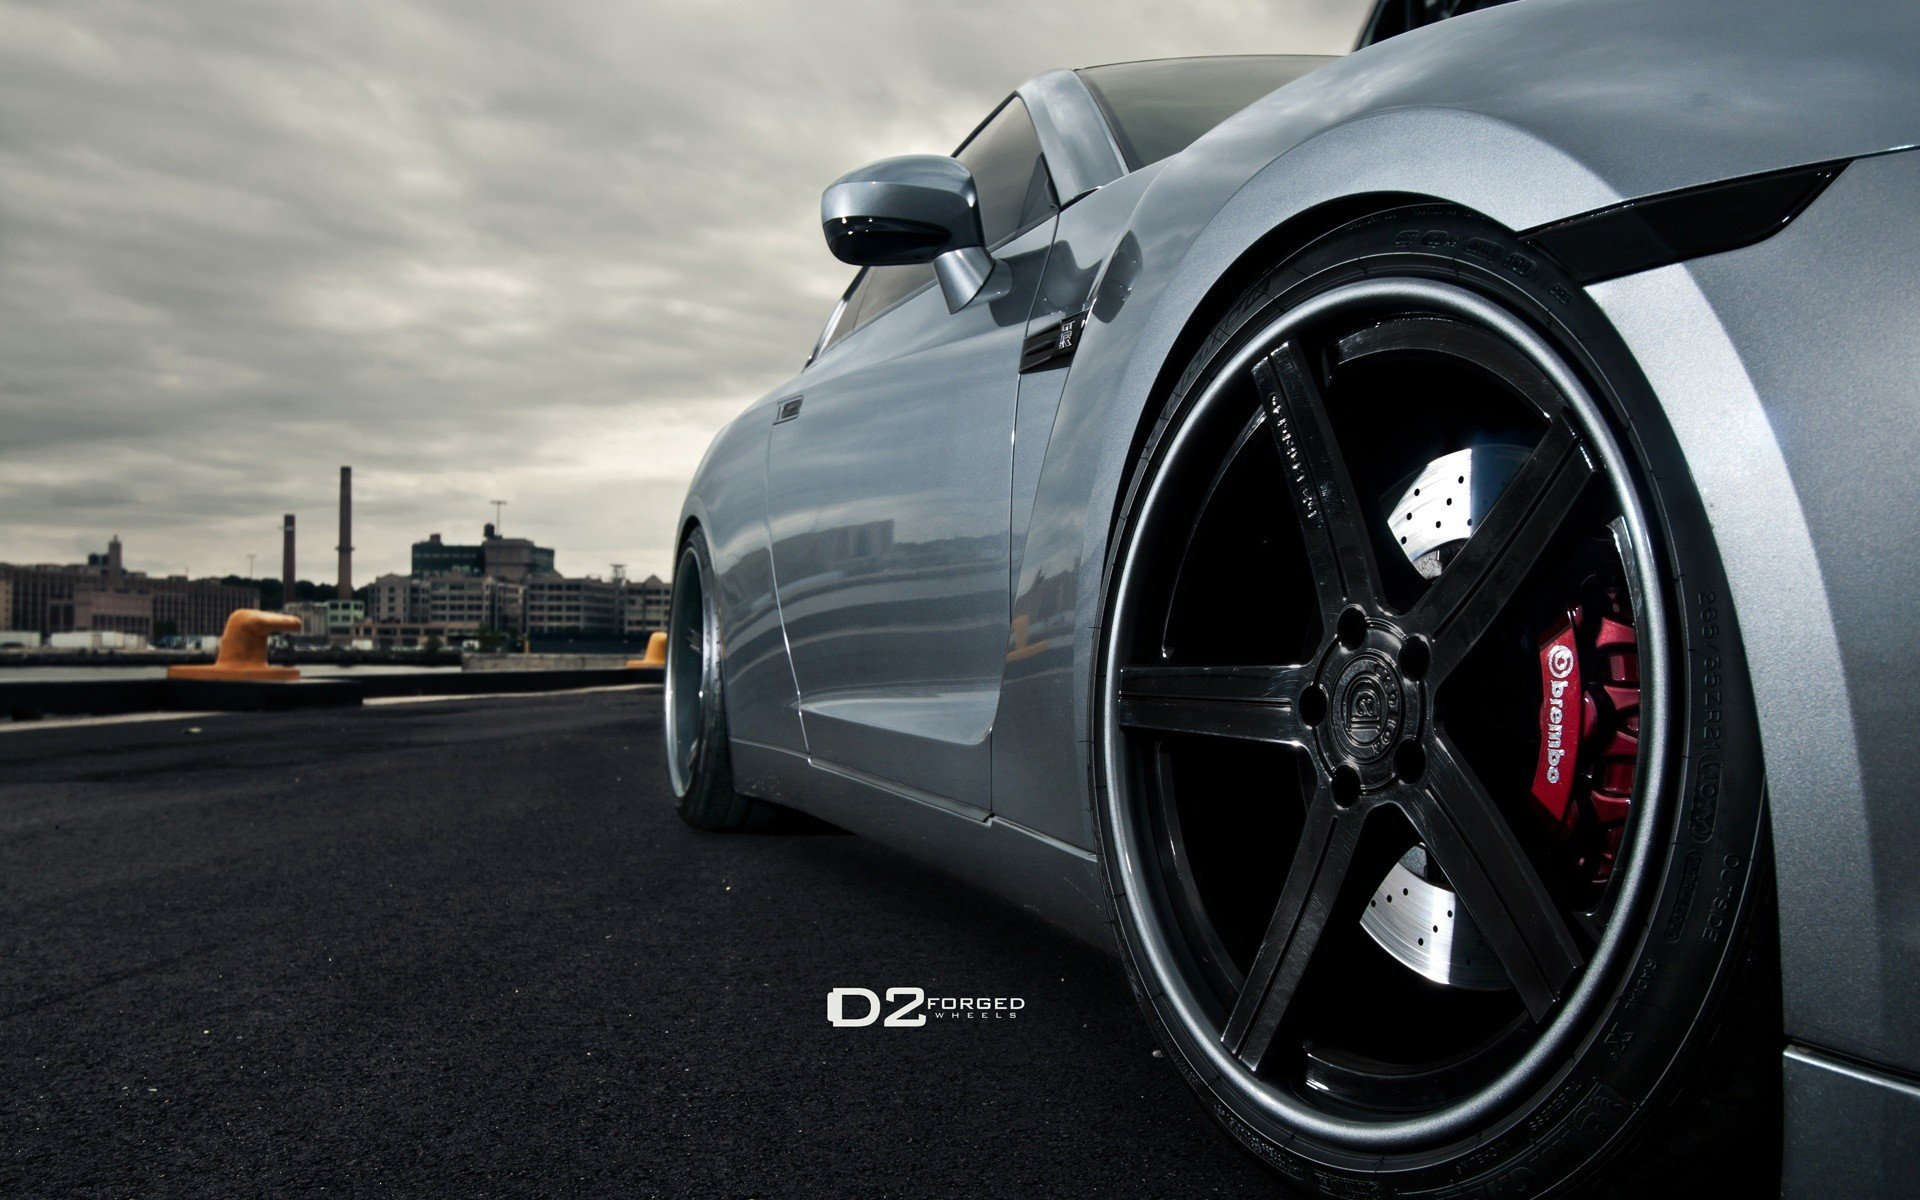 Remarkable Rims For Sports Cars Fulfillment